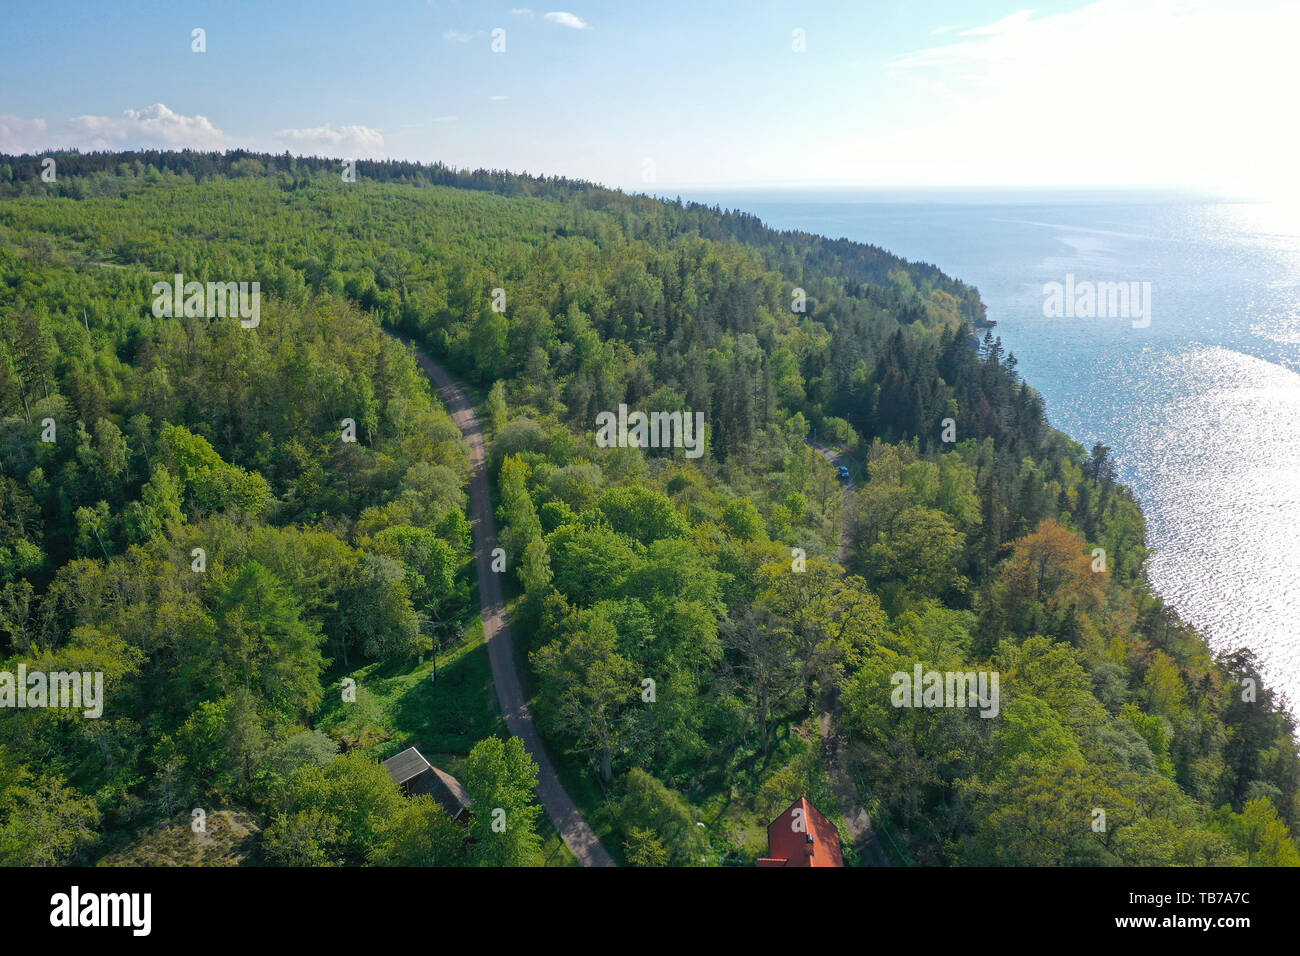 Omberg 20190519 Vy Over Ekoparken Omberg Omberg Is A Forested Mountain In The Western Ostergotland County In Sweden Foto Jeppe Gustafsson Stock Photo Alamy